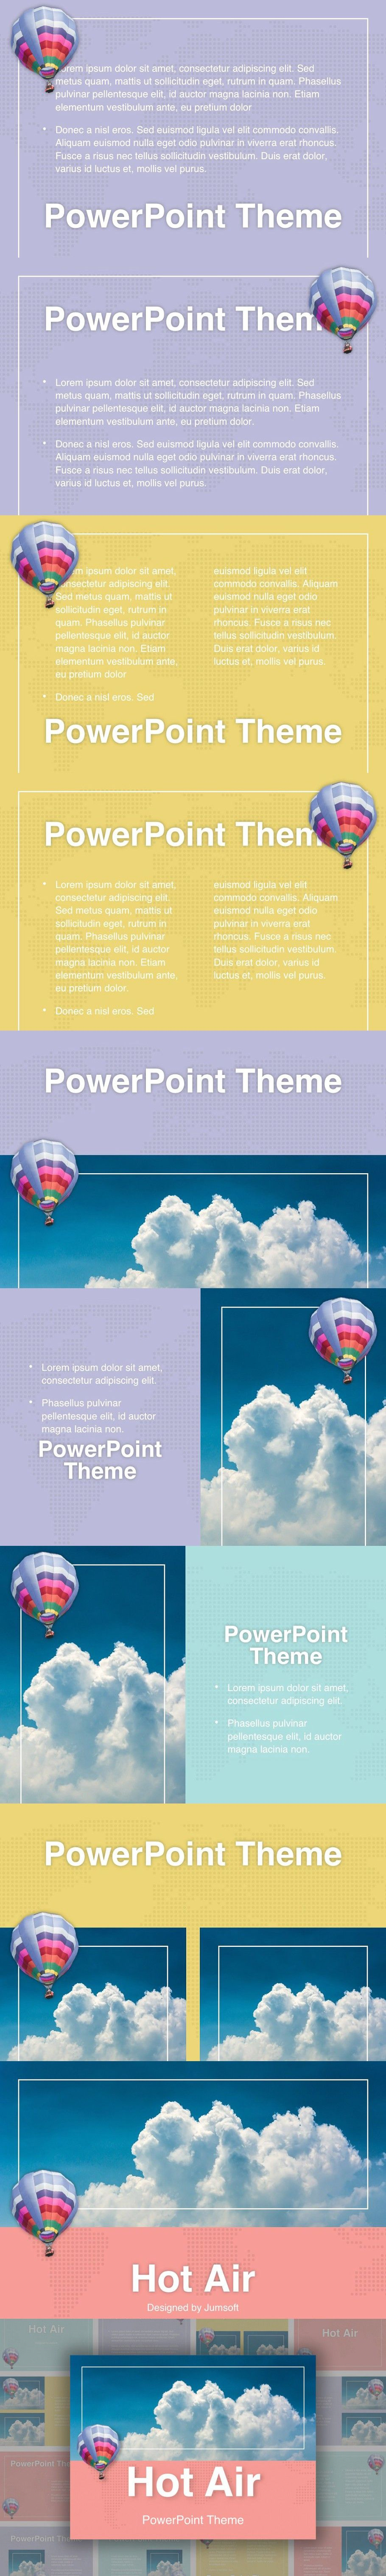 Hot Air PowerPoint Theme Powerpoint themes, Powerpoint